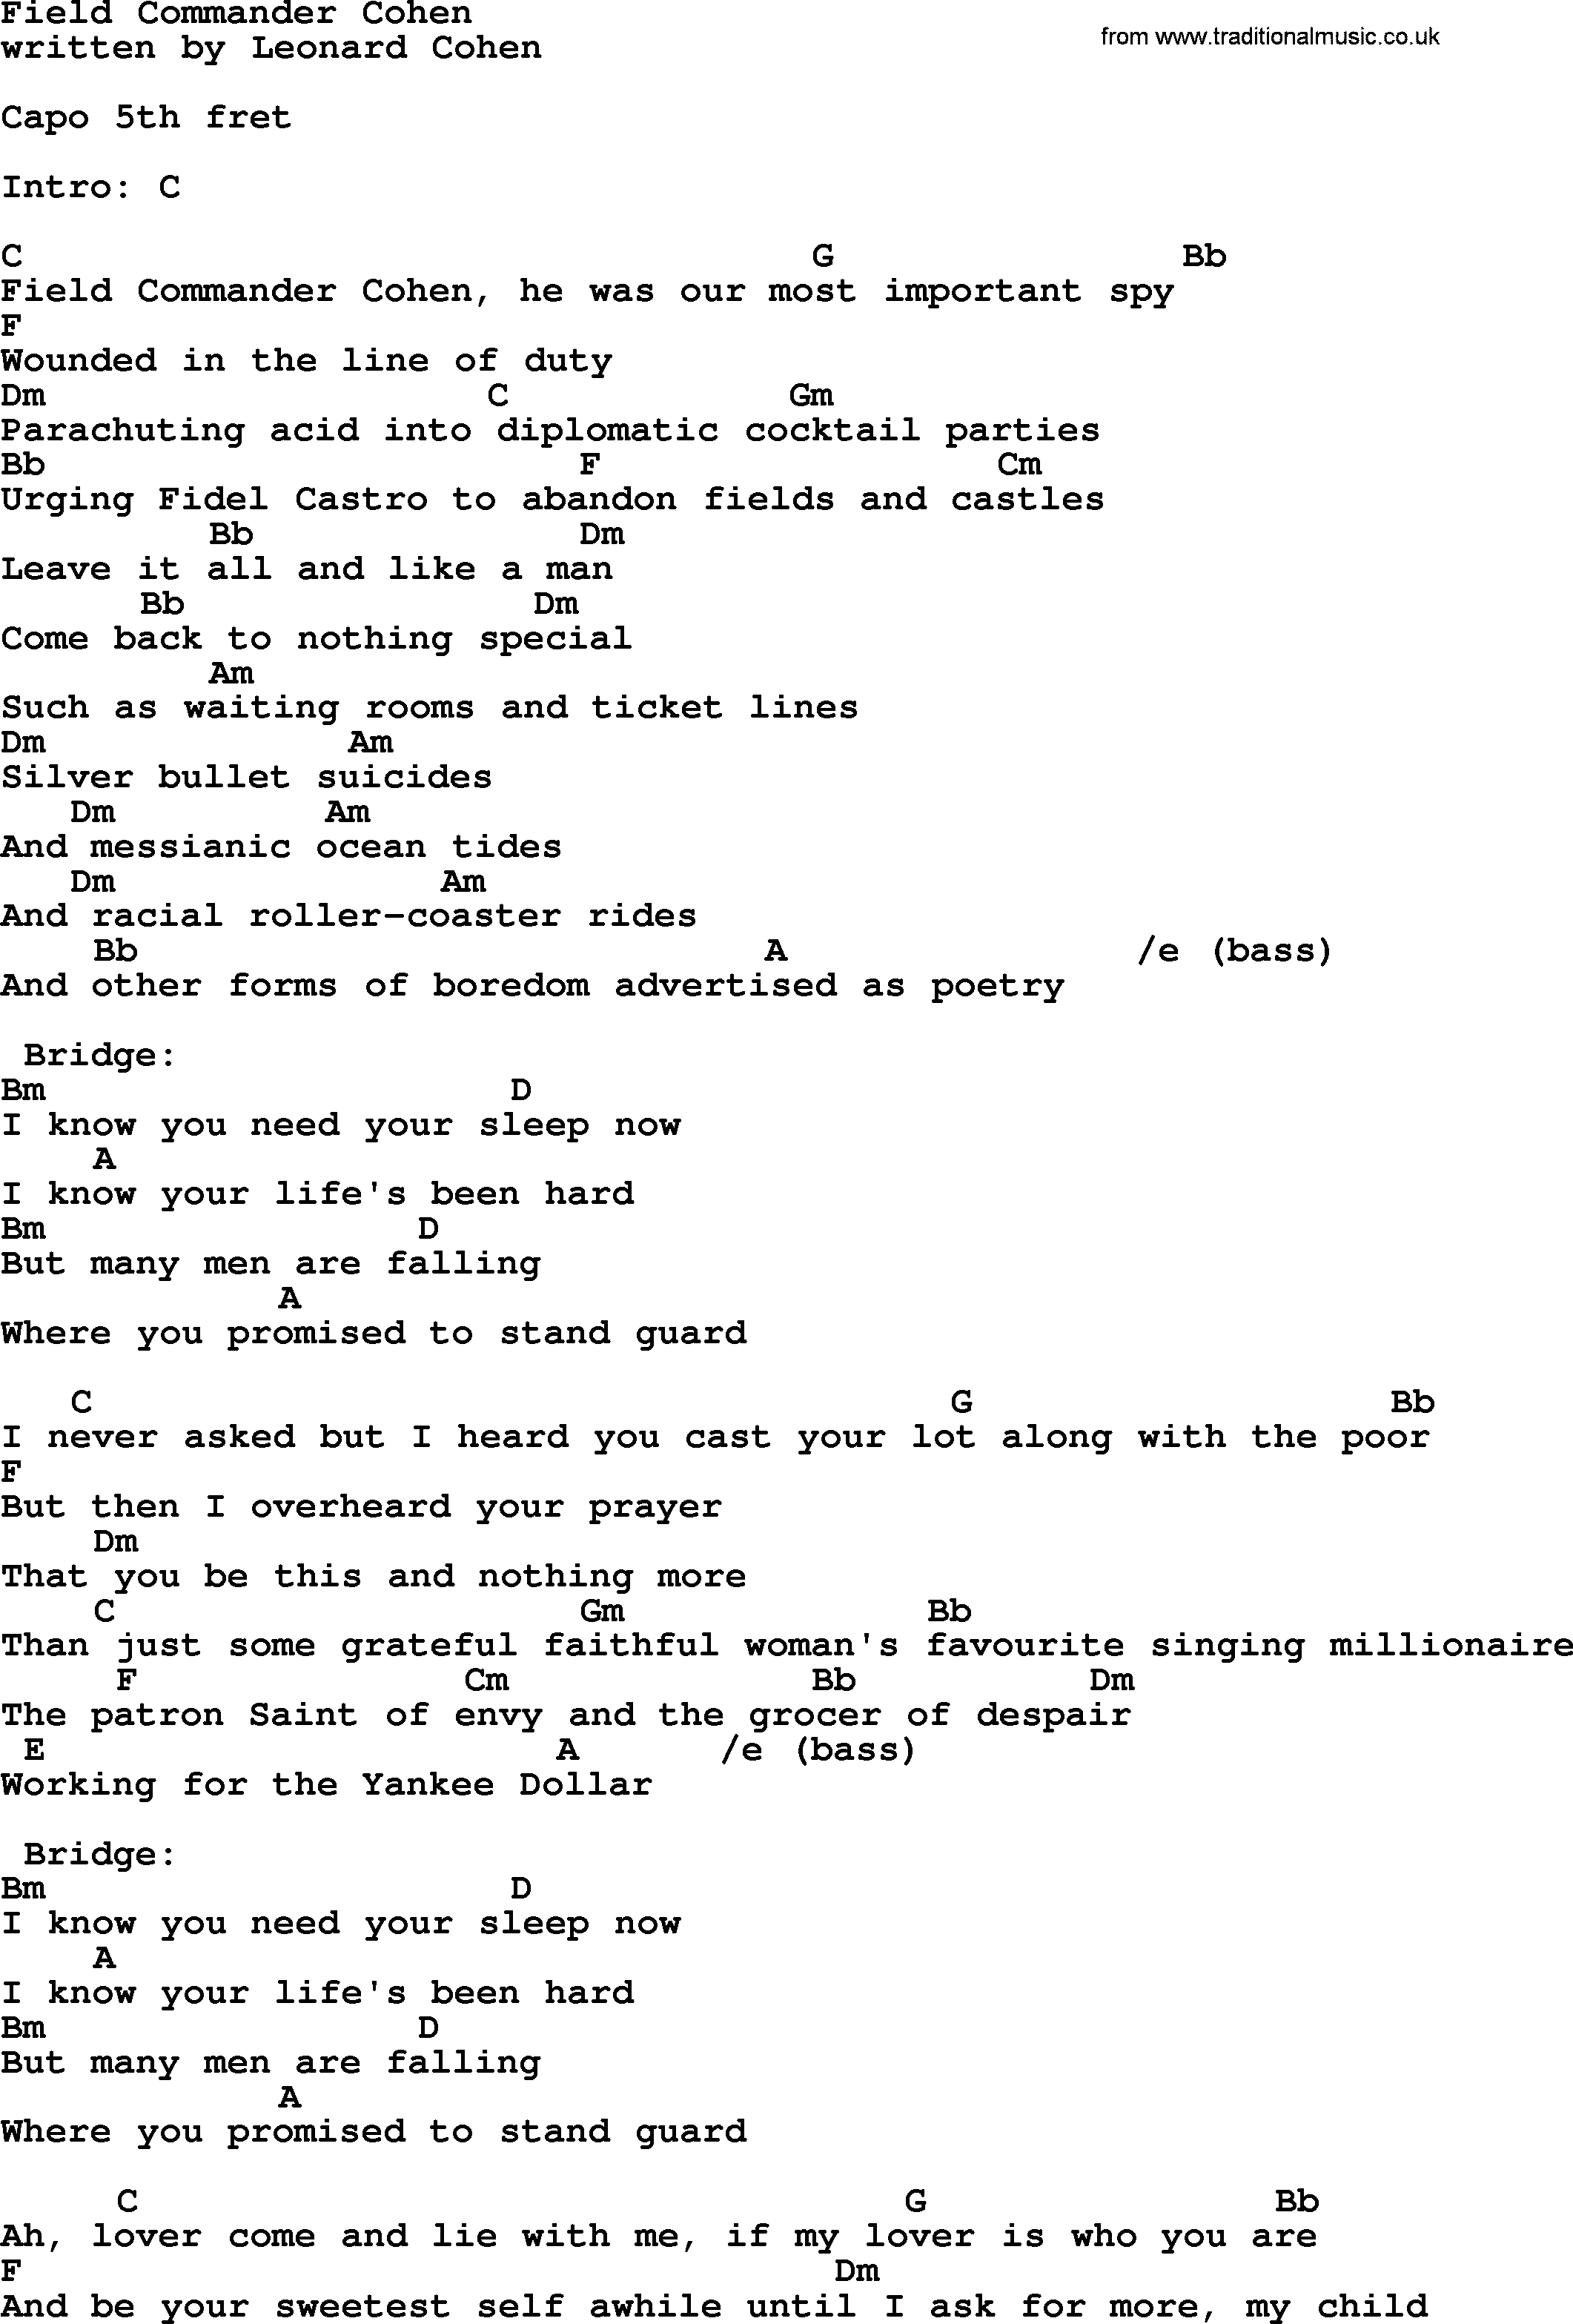 Leonard cohen song field commander cohen lyrics and chords leonard cohen song field commander cohen lyrics and chords hexwebz Image collections